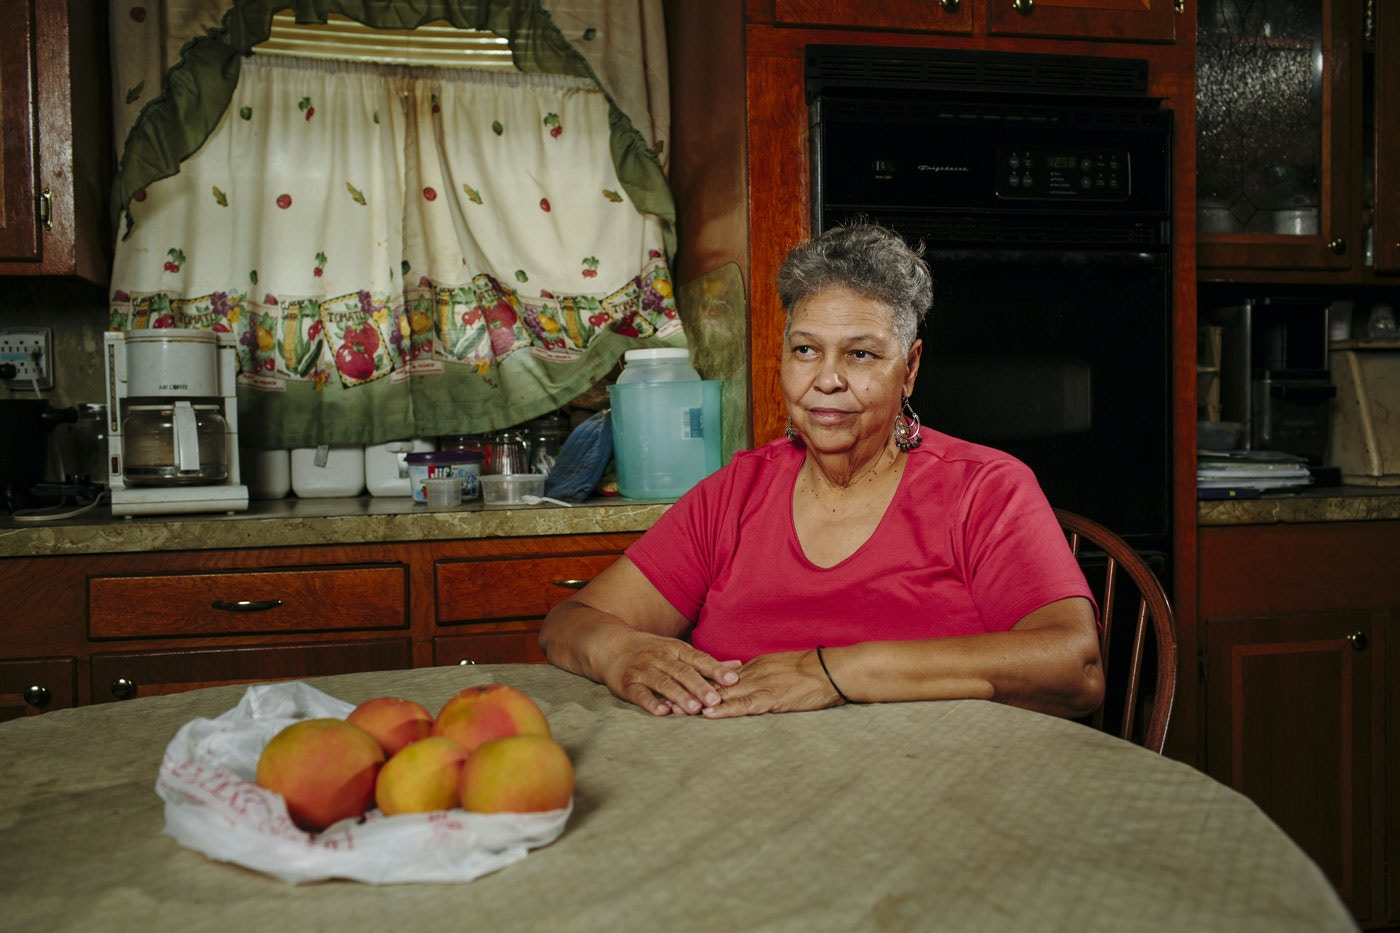 Westlake, LA - 10/22/2015 - Judy Montgomery (65) sits in her kitchen in Mossville. Montgomery has lived her entire life in the small hamlet, which has gradually been eroded by the expansion of neighboring industrial plants.